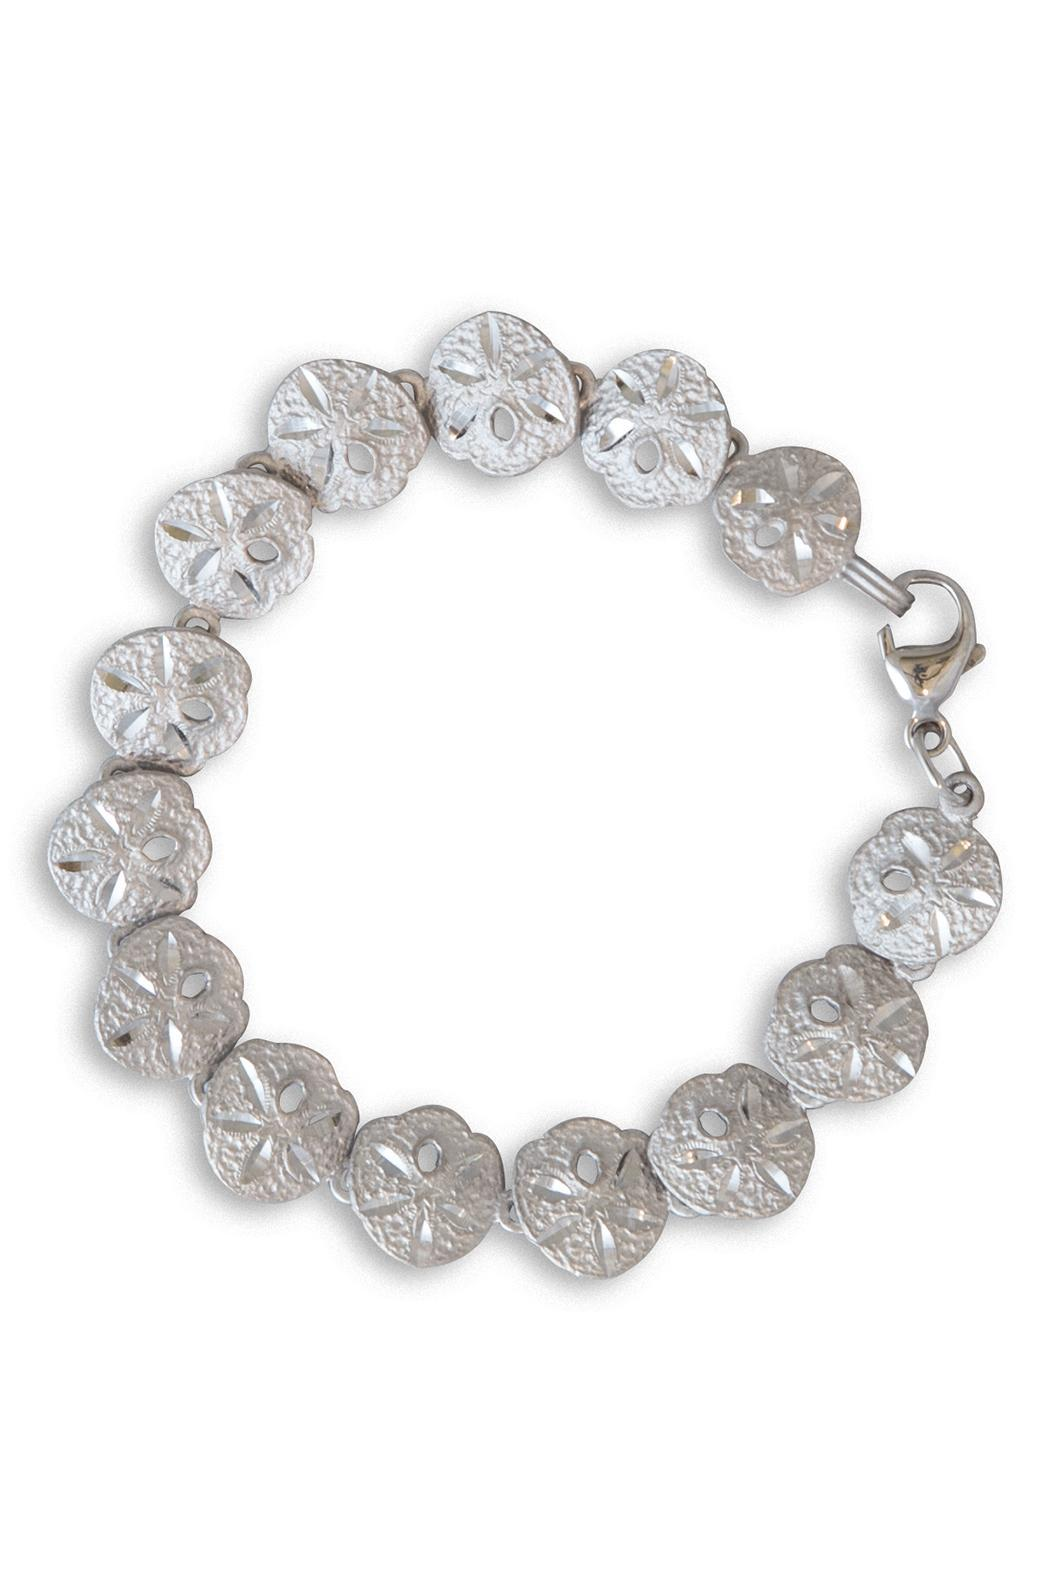 D Amico Sand Dollar Bracelet From Cape Cod By Oceana Of